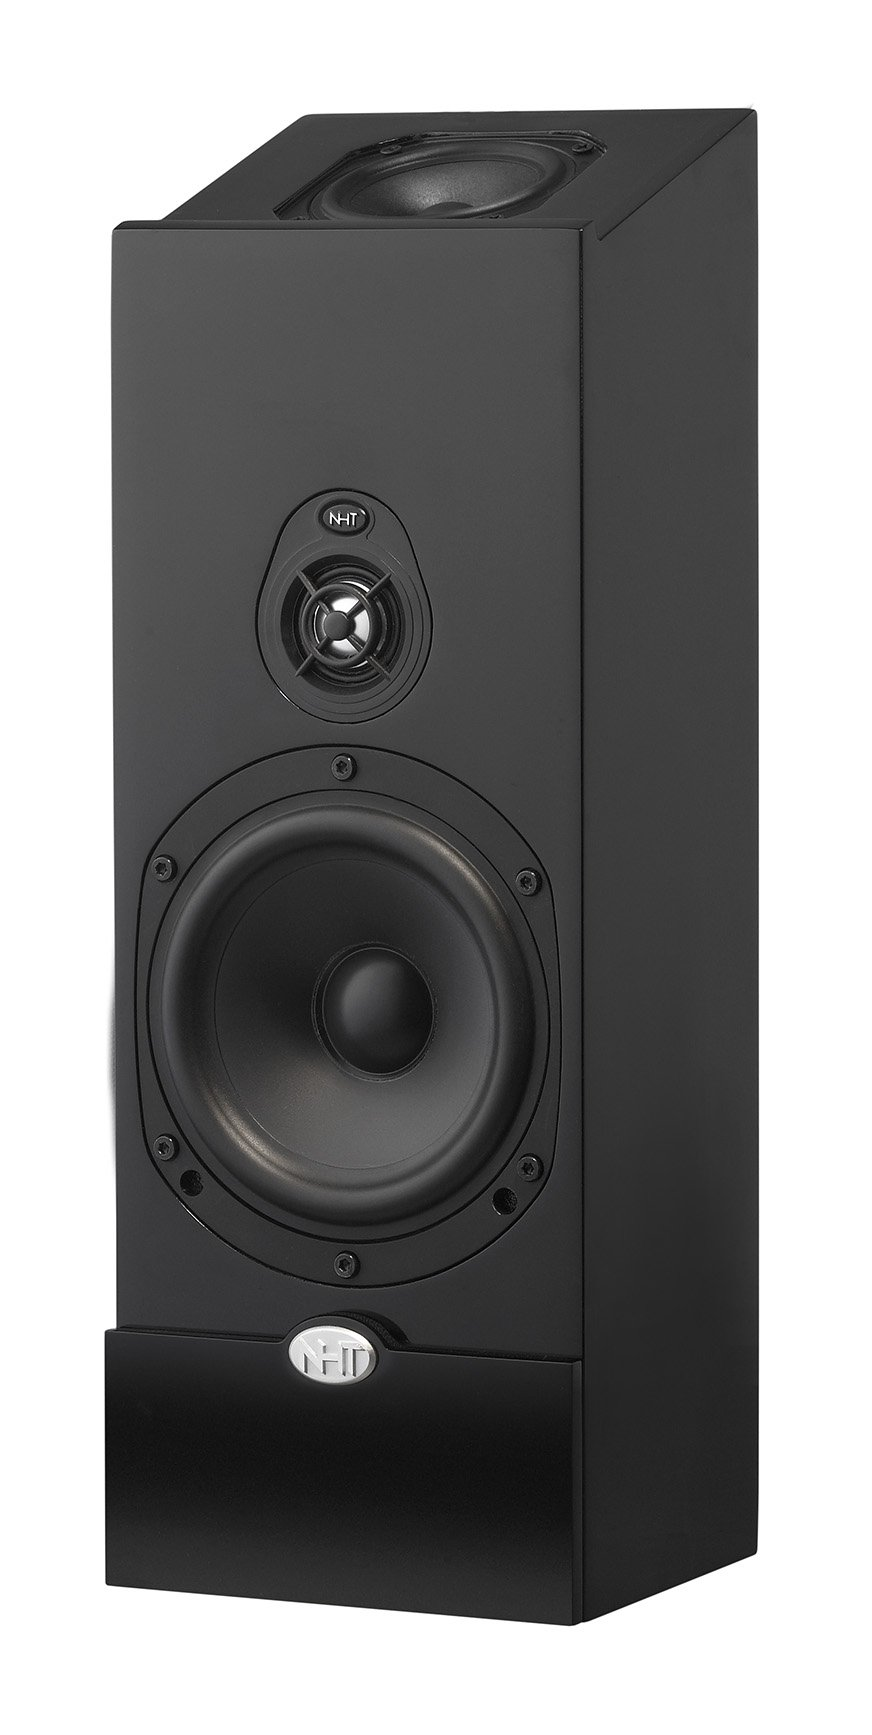 NHT Media Series 2-Way Dolby Atmos Satellite Speaker, Single, Single, High Gloss Black by NHT